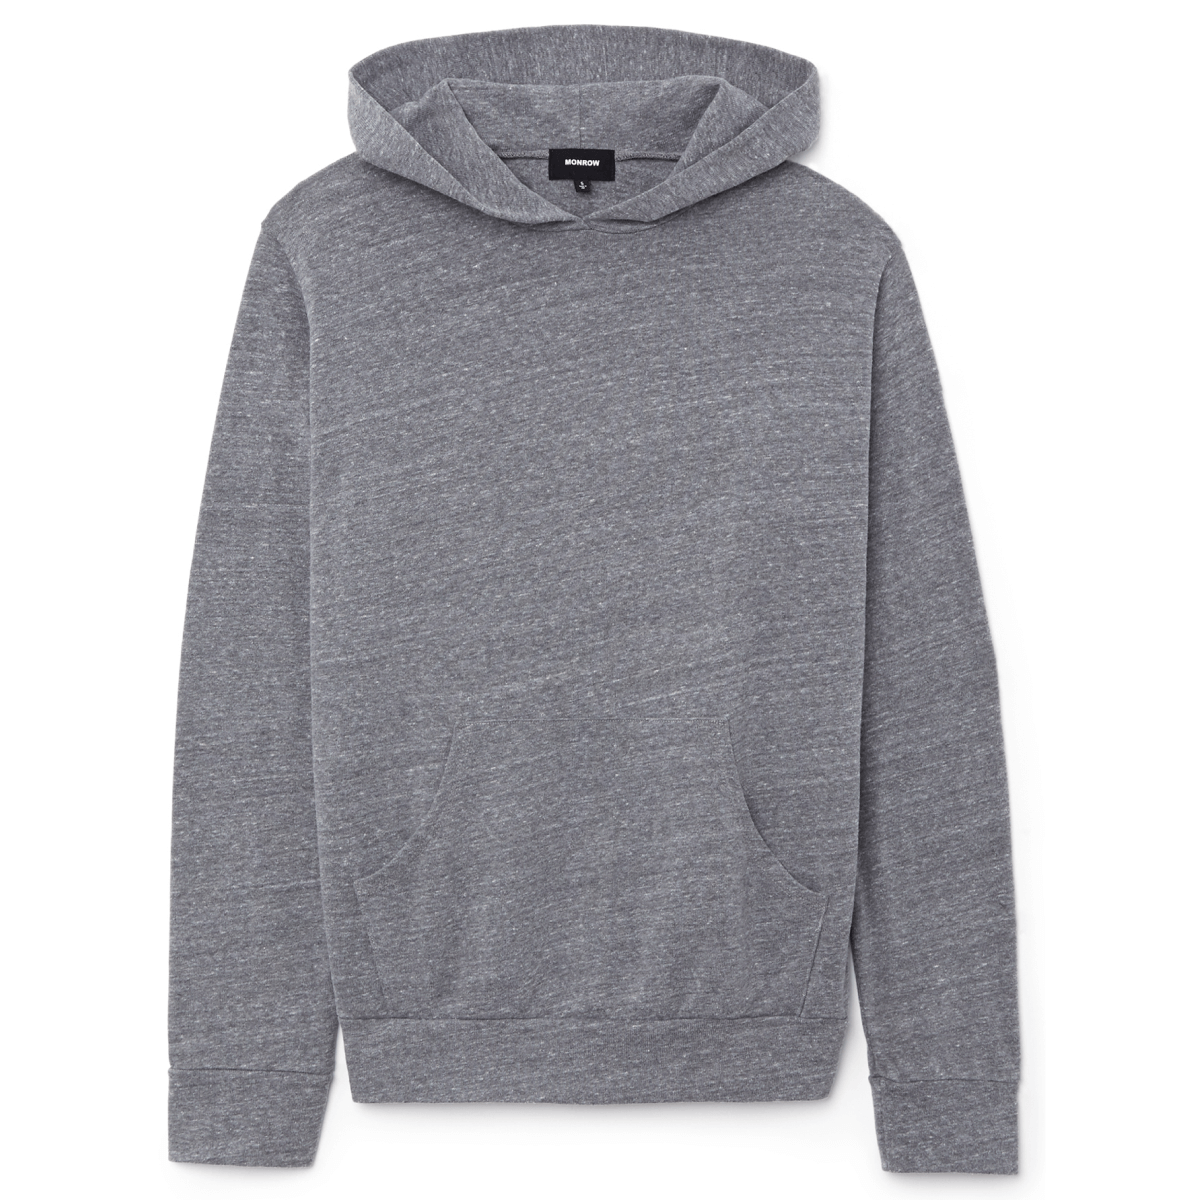 Monrow Heather Fleece Pullover Hoodie